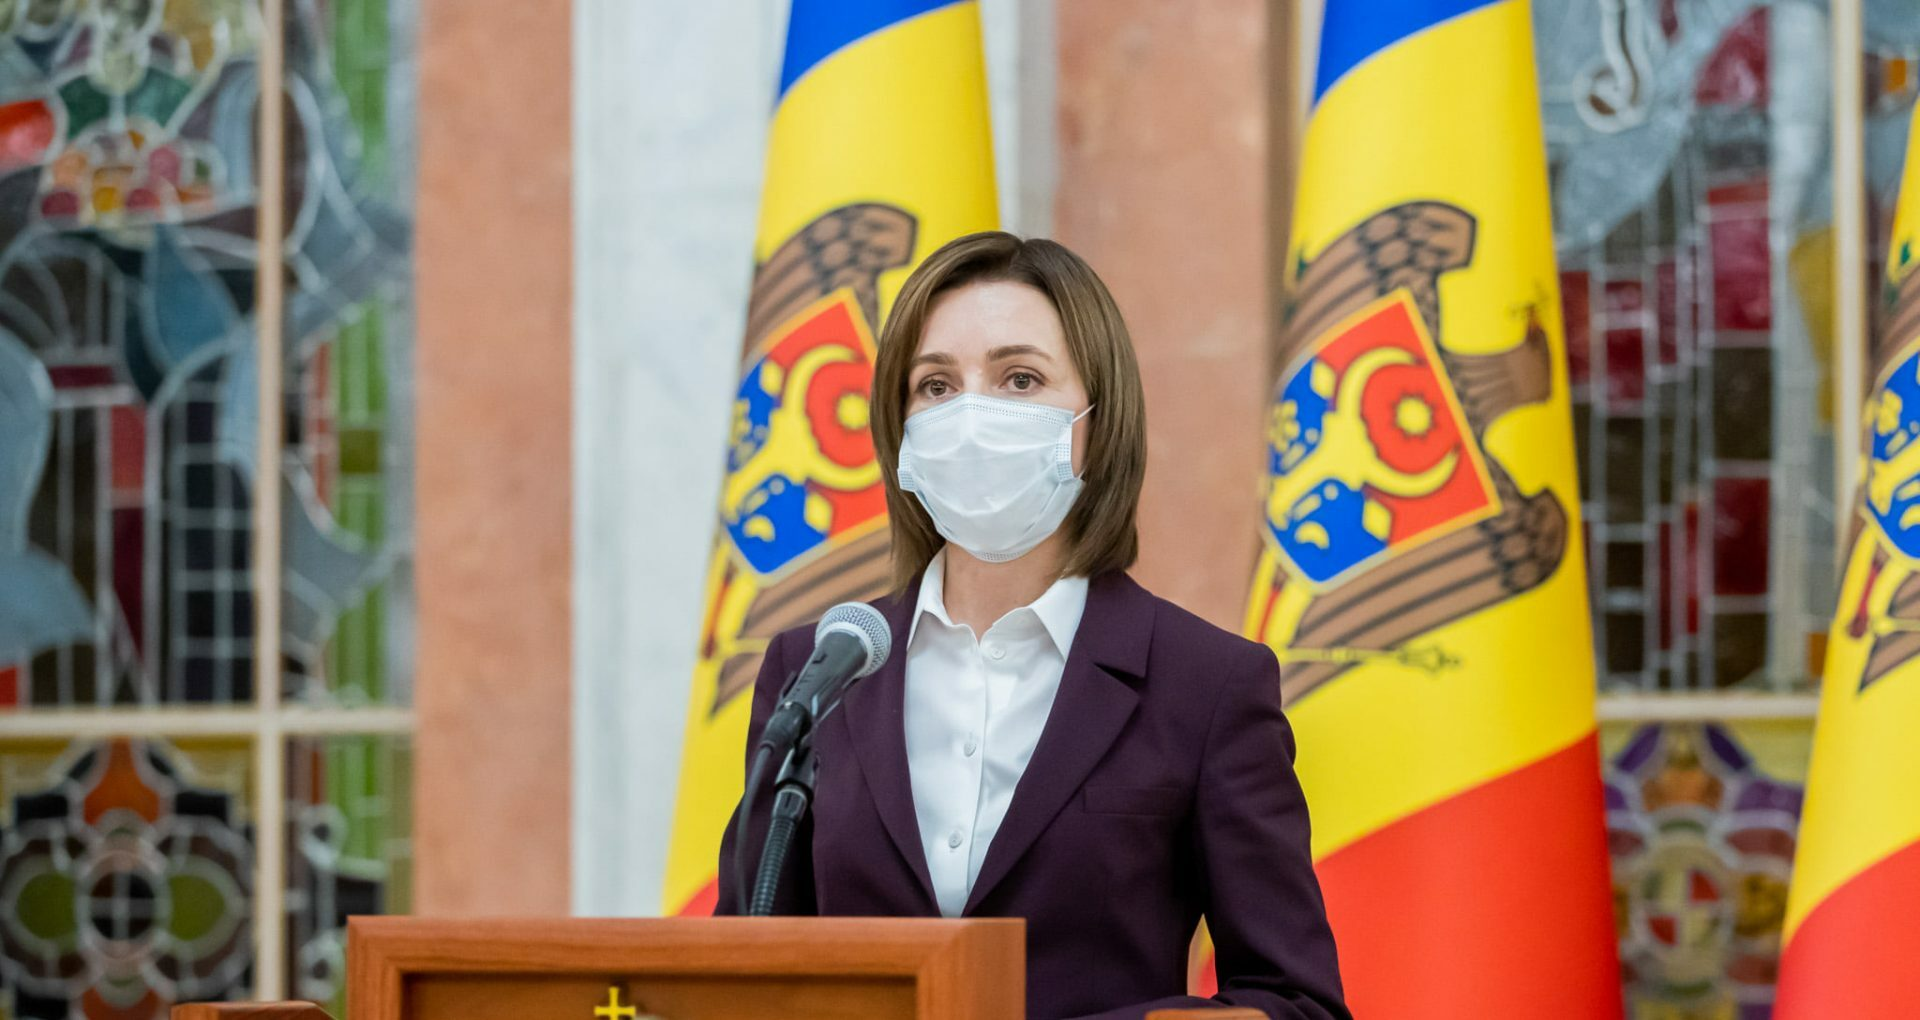 E.U. Donates 15 Million Euros to Mitigate the Pandemic Crisis in Moldova